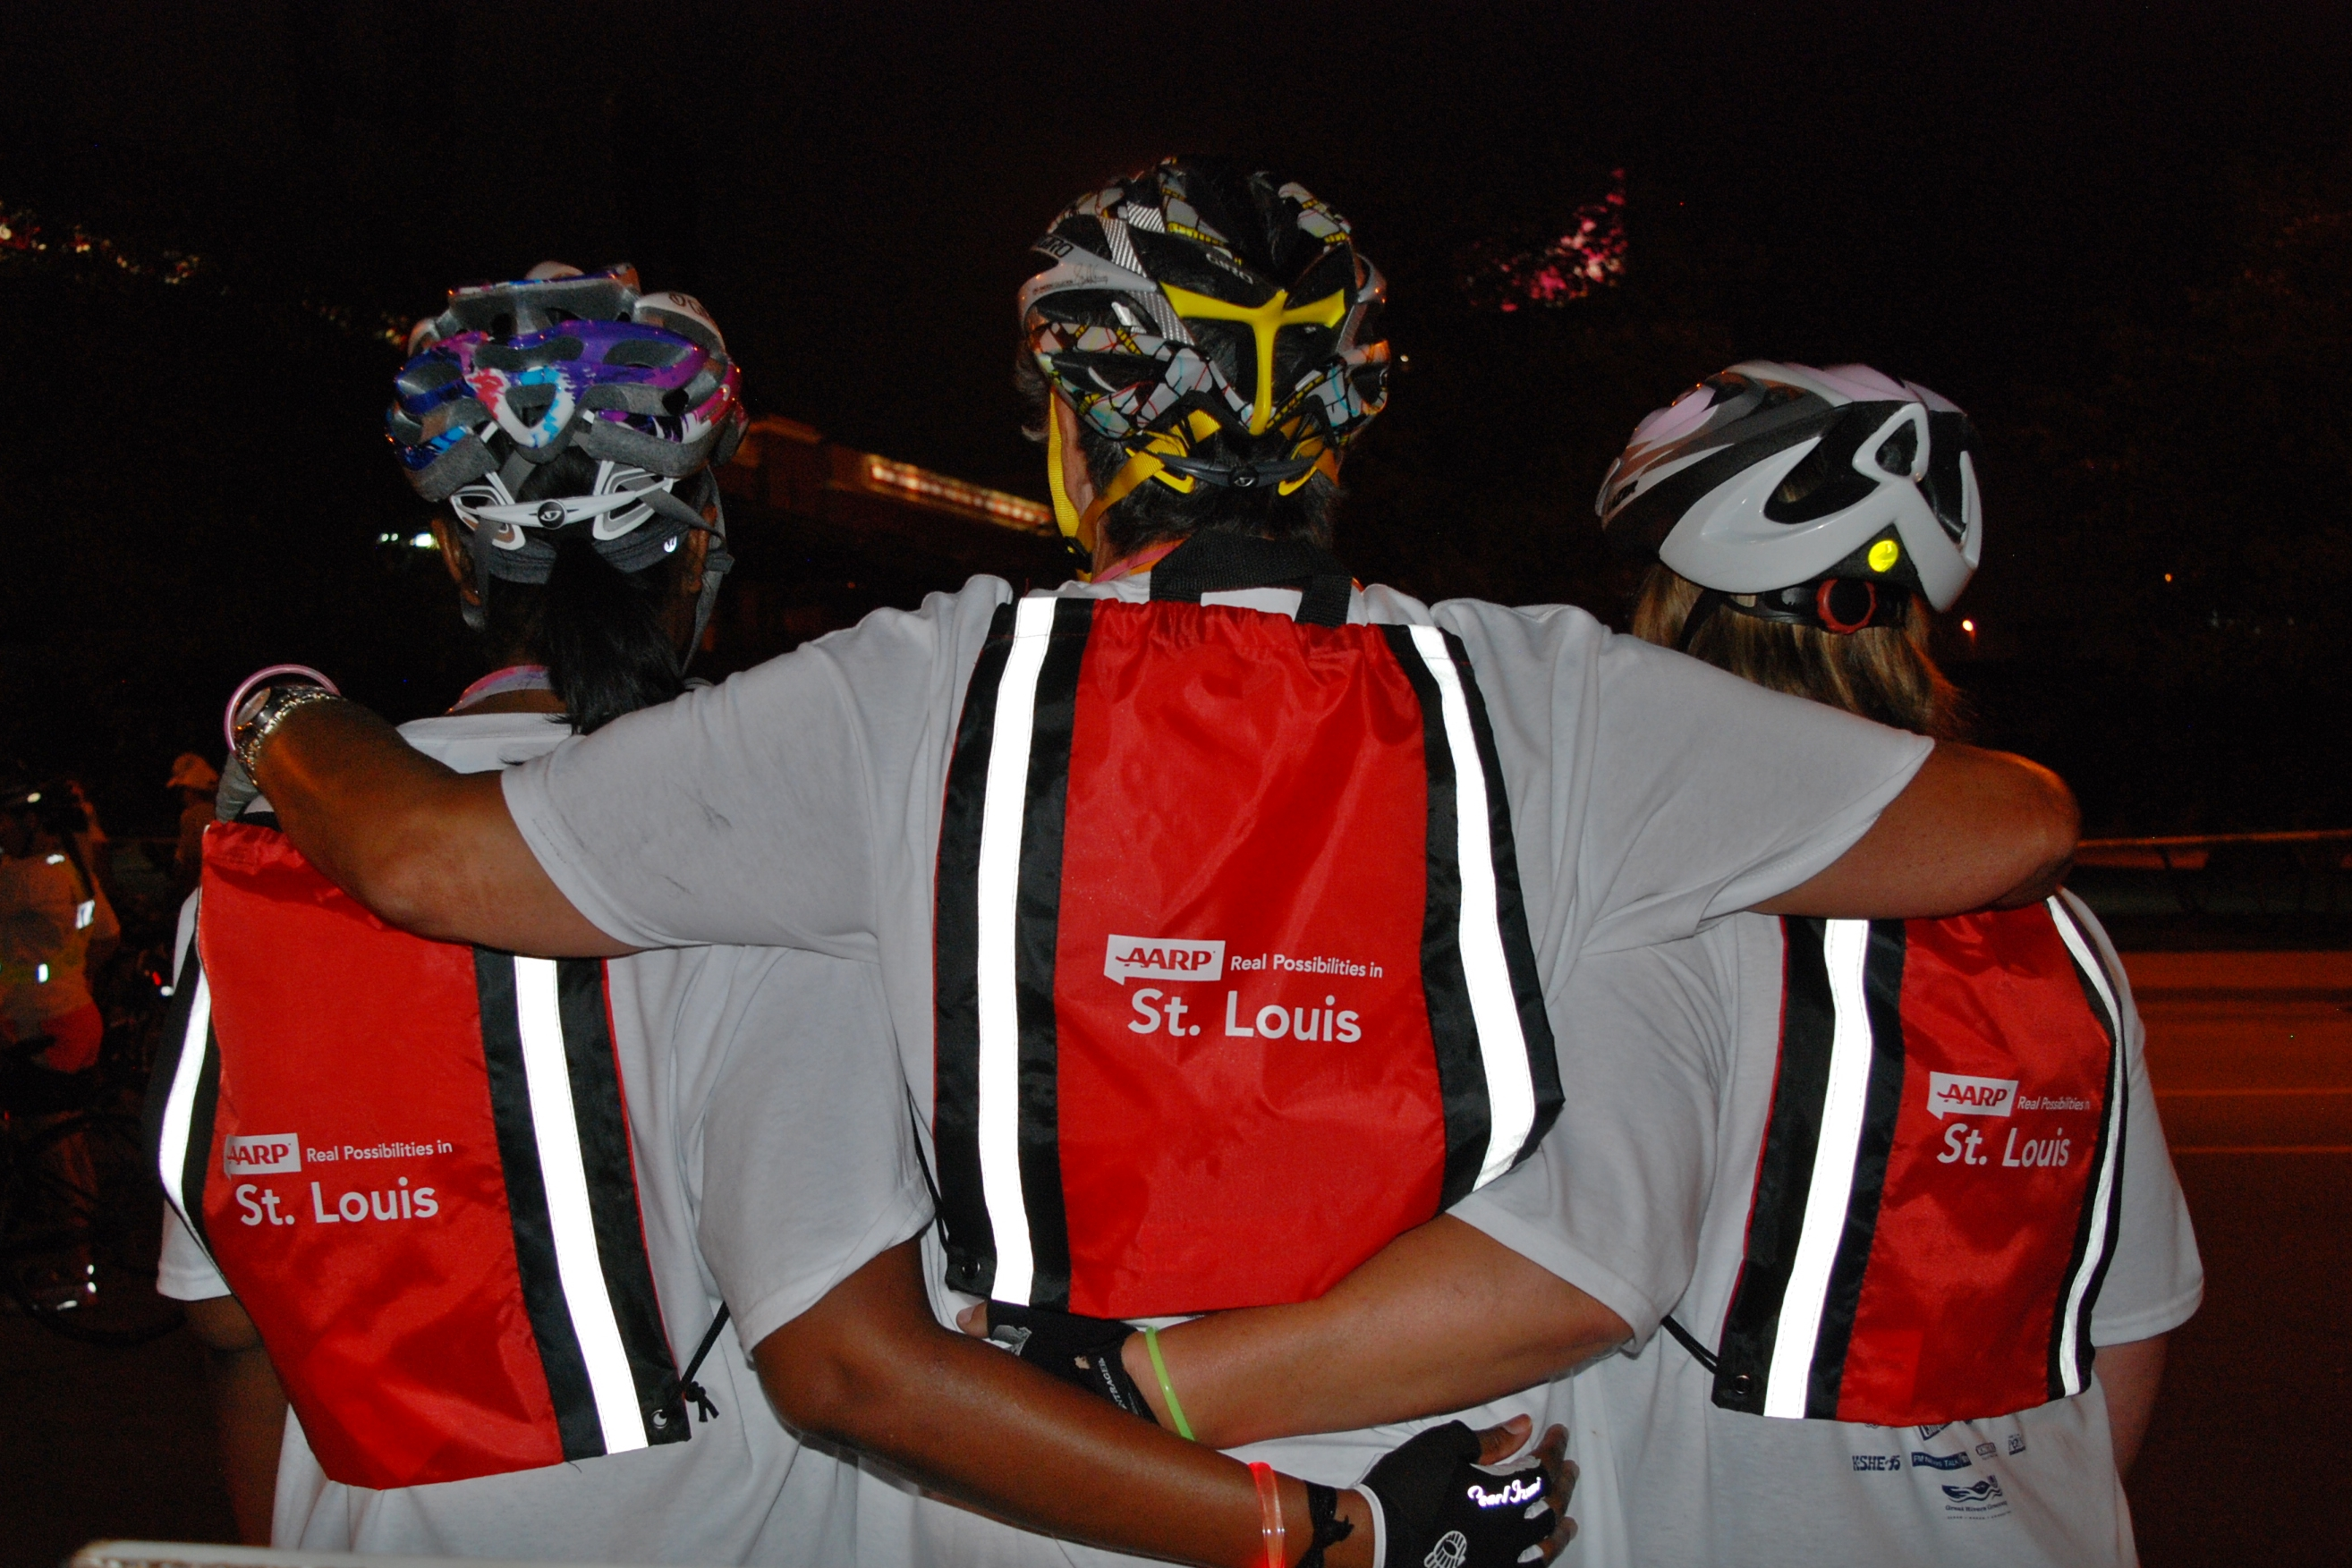 Visit with AARP in St. Louis at Moonlight Ramble 2019 - Get Discounted Rider Fee